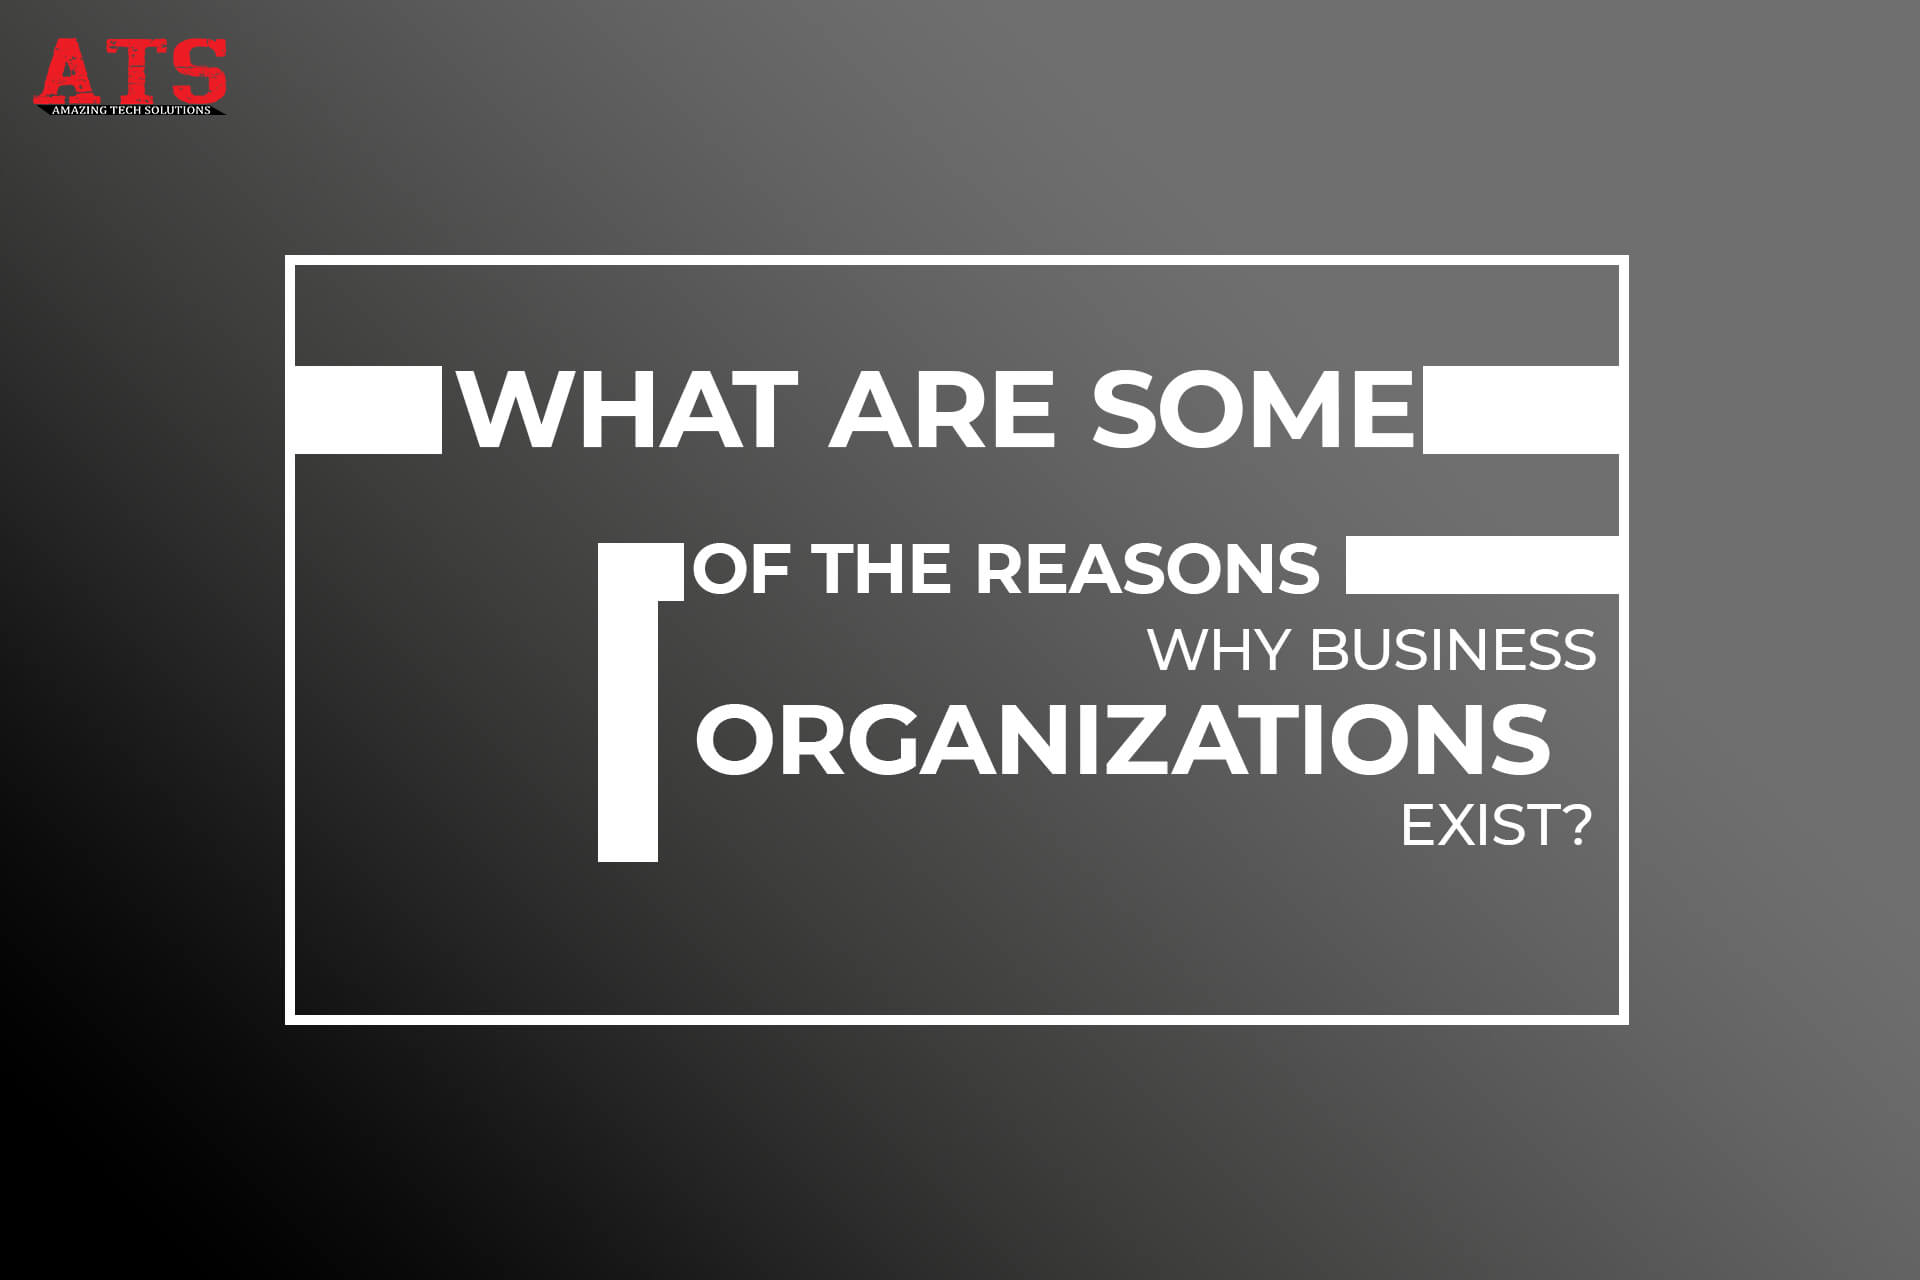 What Are Some Of The Reasons Why Business Organizations Exist?